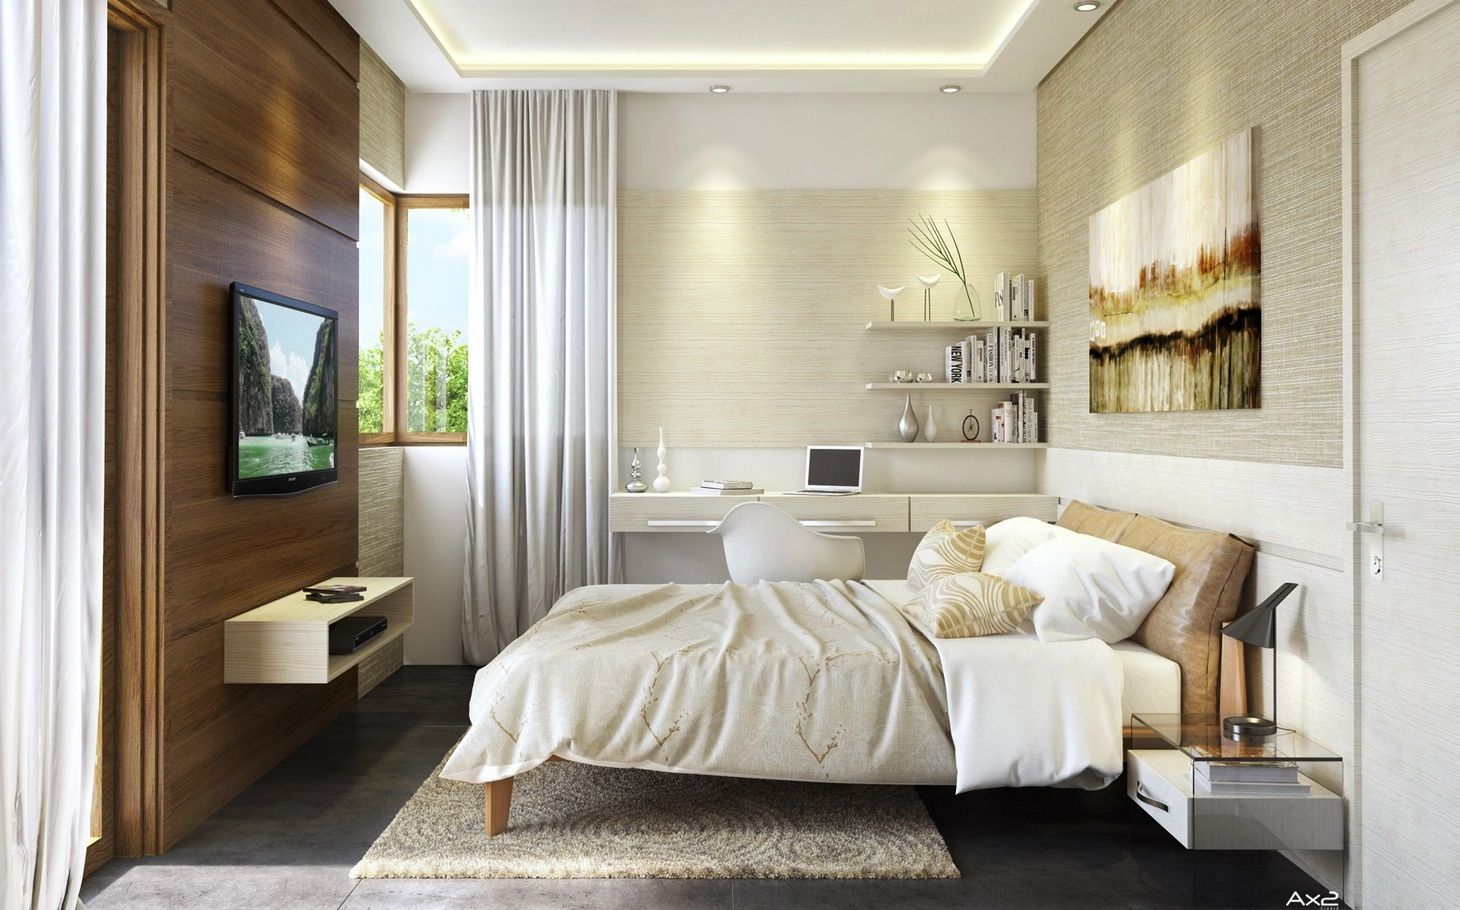 breathtaking bedroom designs to inspire you | rooms | pinterest